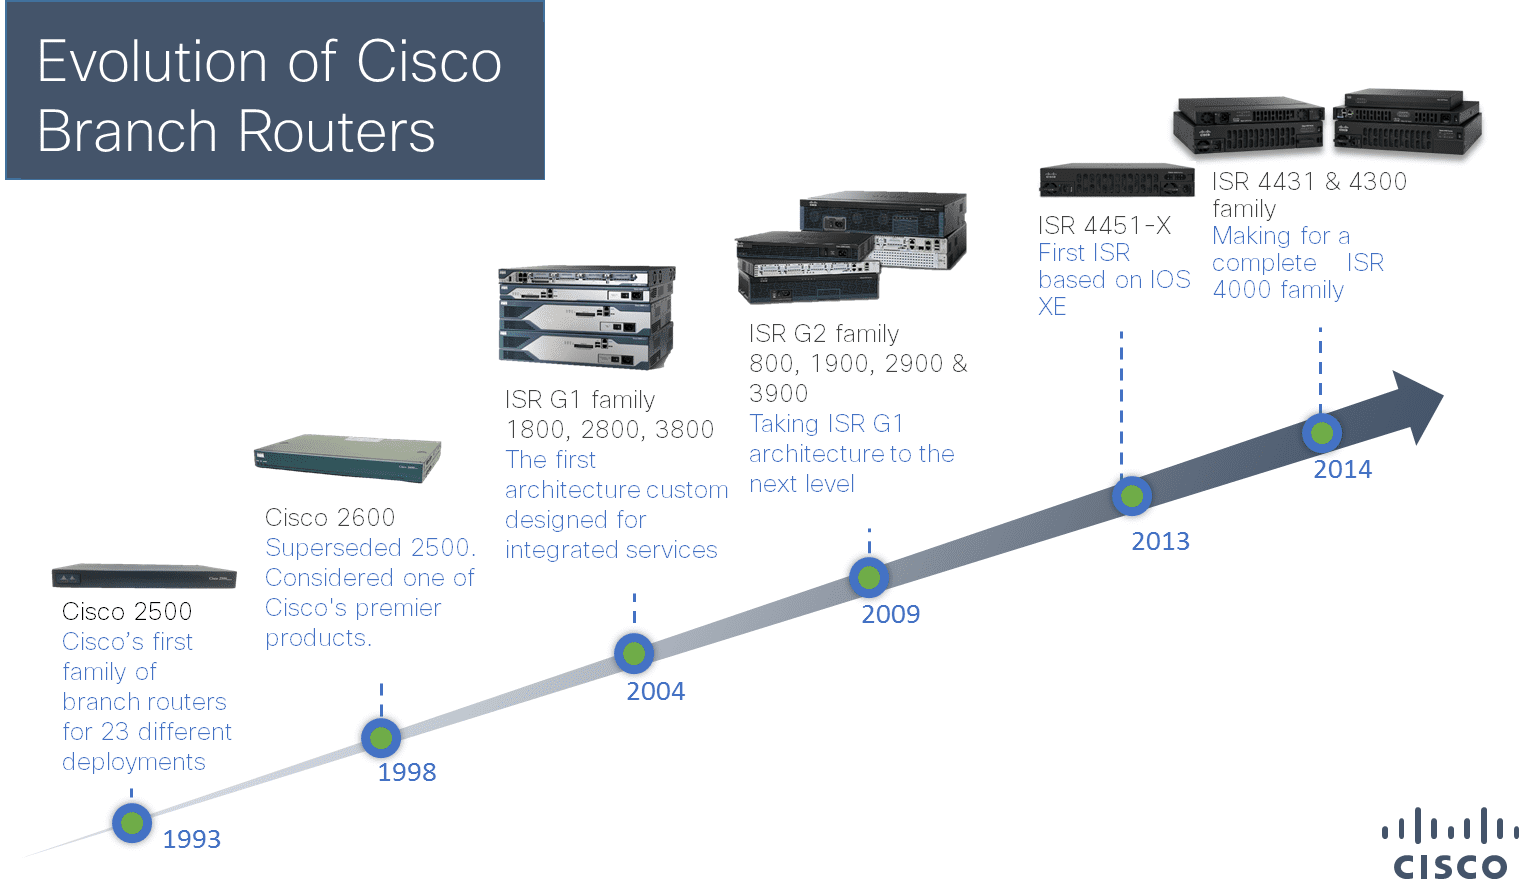 Beware of artificial rate limits on Cisco ISR 4000 Series